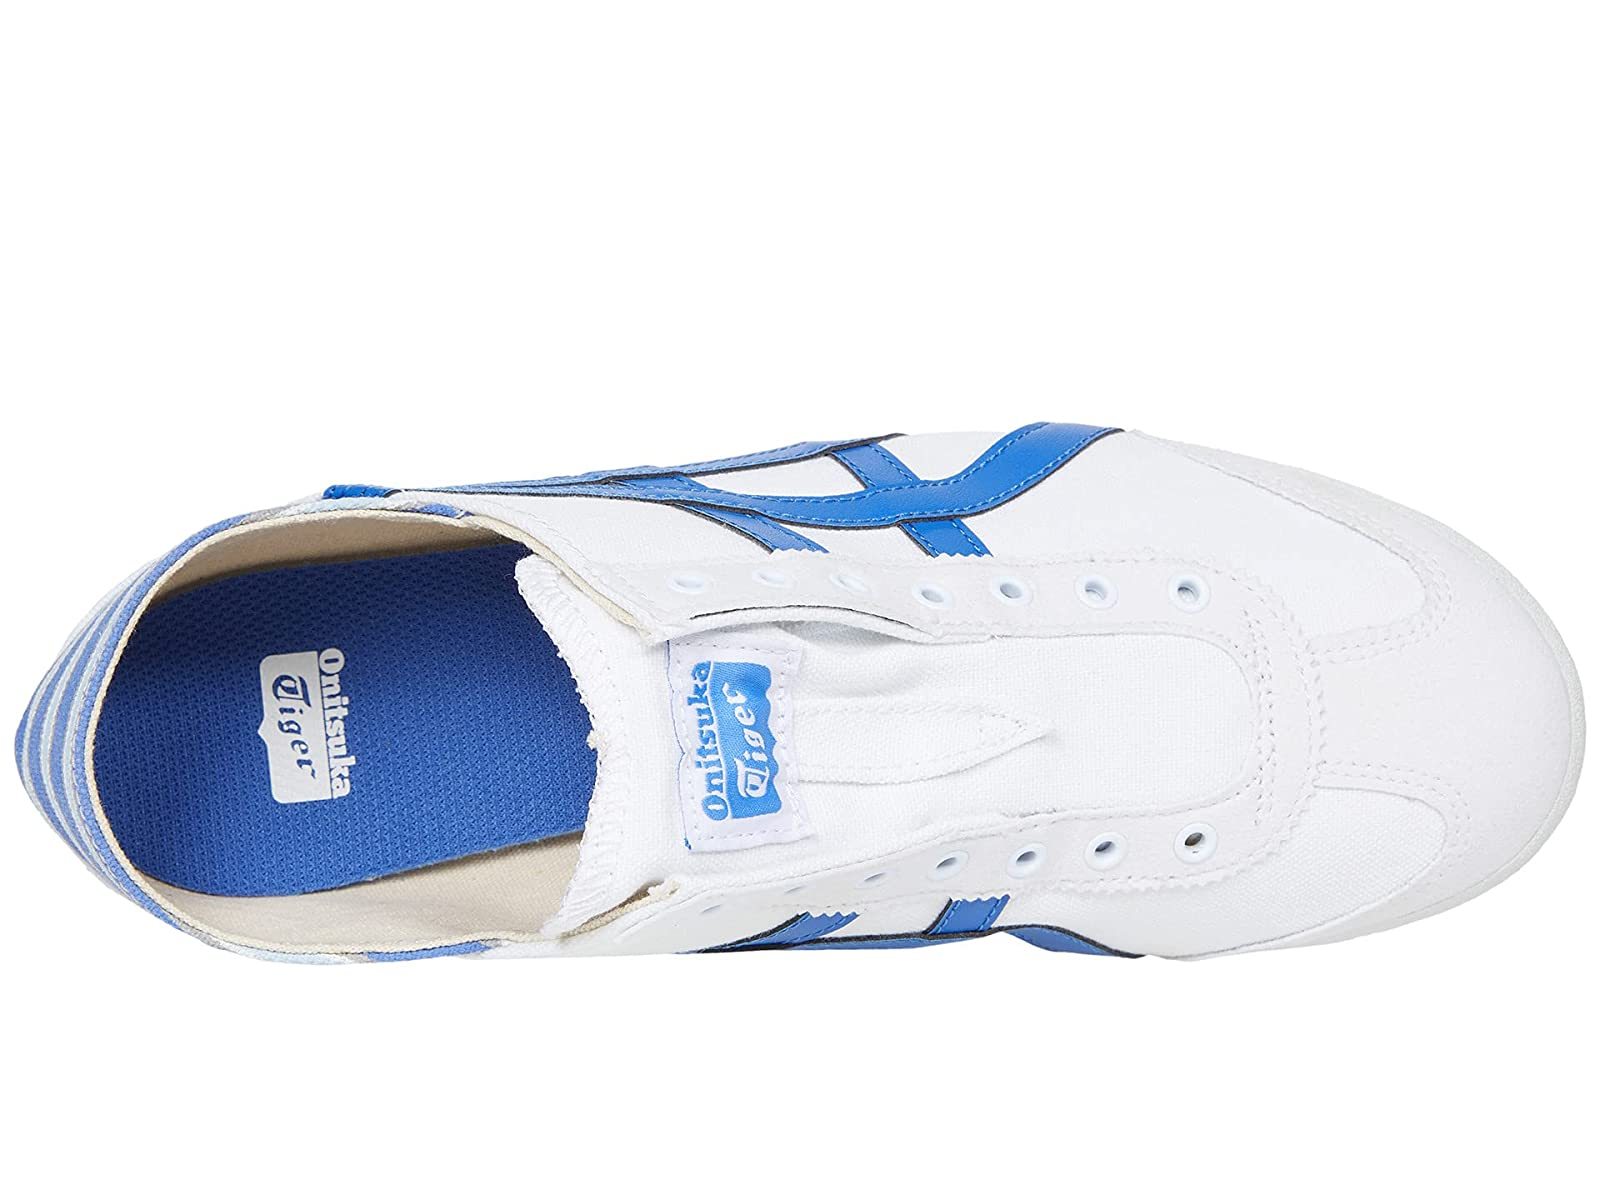 miniature 15 - Adulte Unisexe Baskets & Athlétique Chaussures Onitsuka Tiger Mexico 66 Paraty